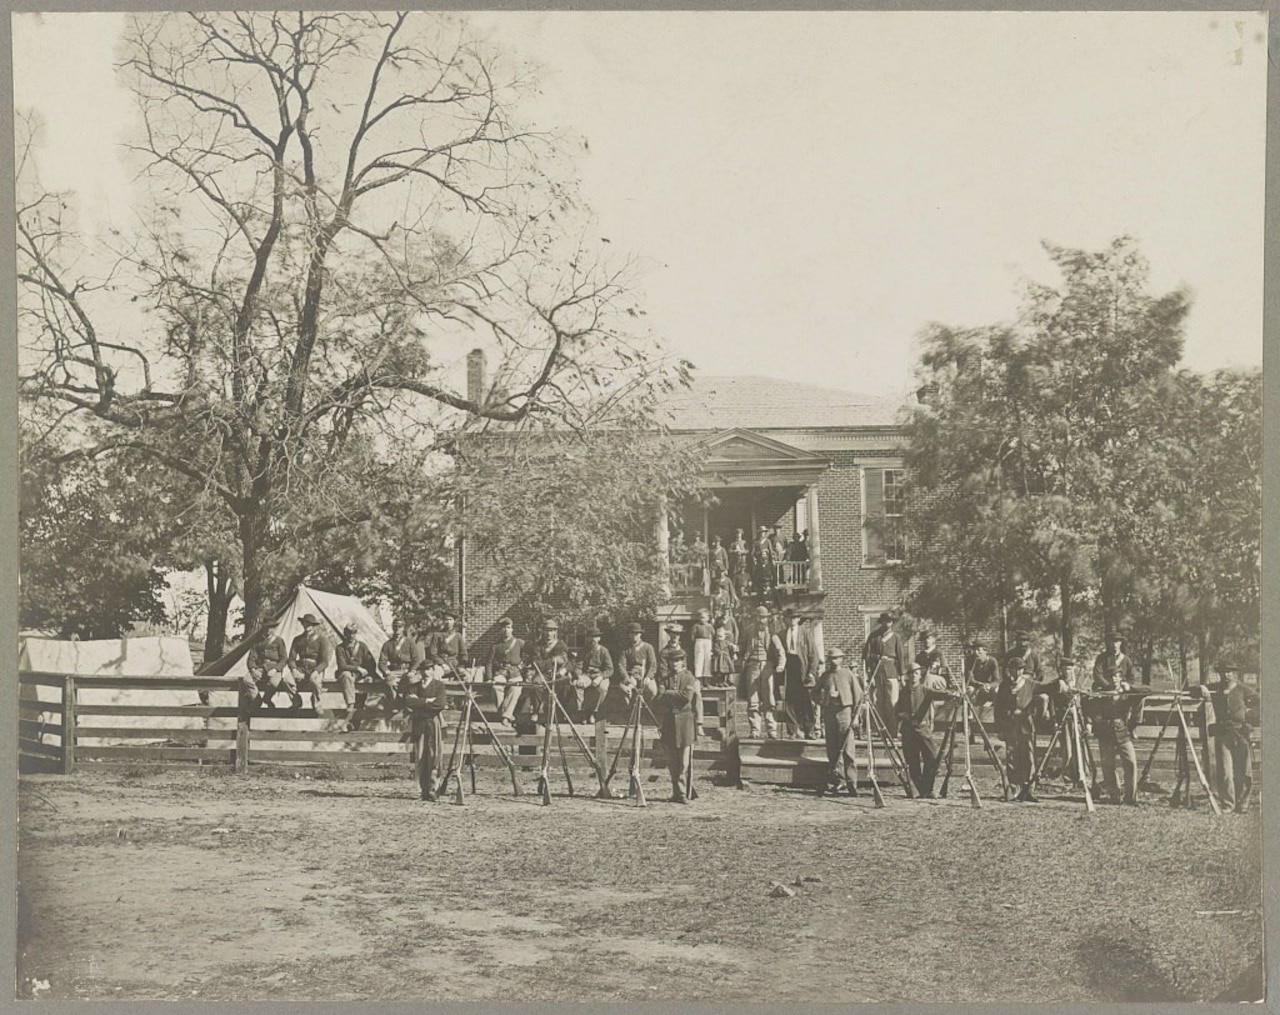 Dozens of Civil War soldiers holding muskets stand in front of a two-story building. More men sit on a fence, while others stand on a second-story balcony.